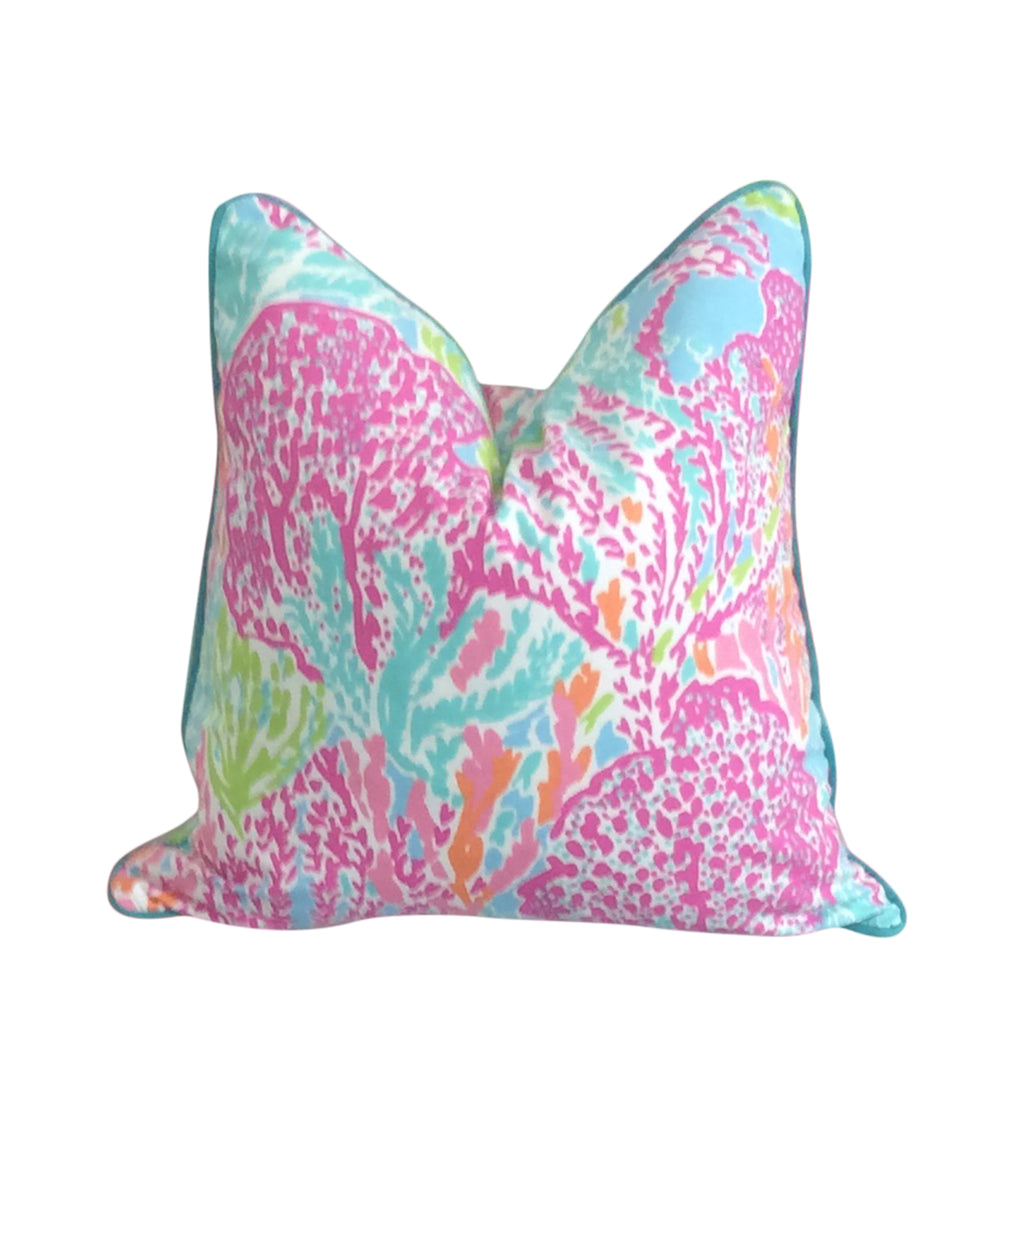 Lilly Pulitzer Coral Reef Let's Cha Cha pink fabric pillow cover Lilly and Co.